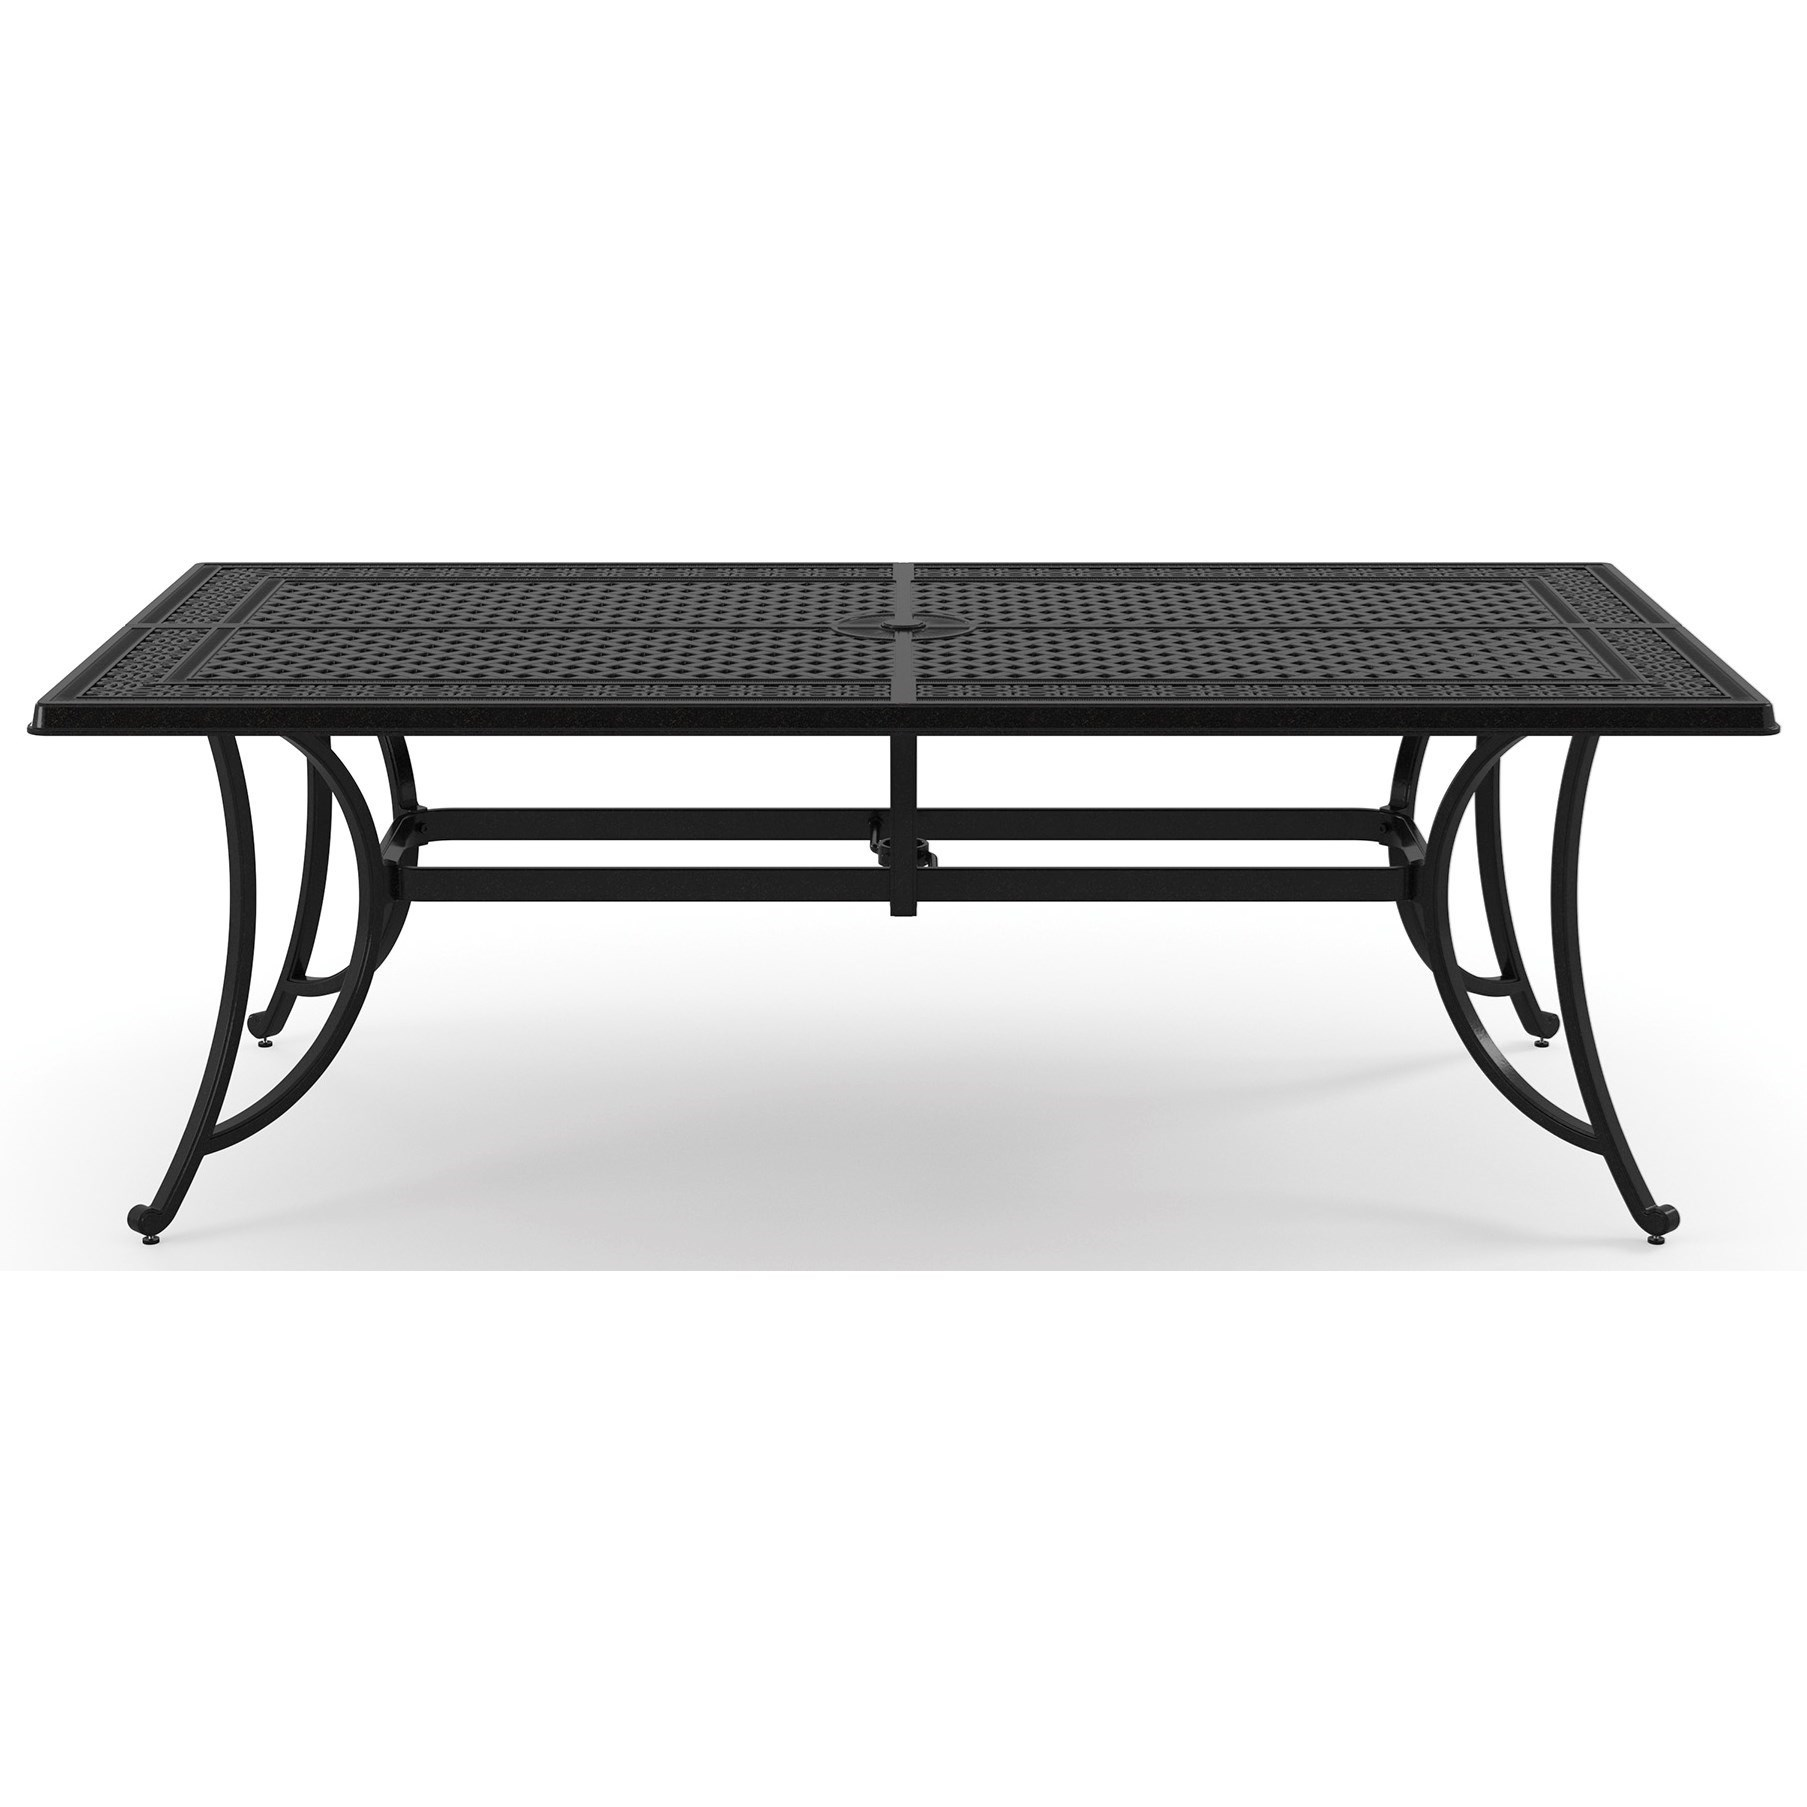 Burnella Rectangular Dining Table by Signature Design by Ashley at Lapeer Furniture & Mattress Center